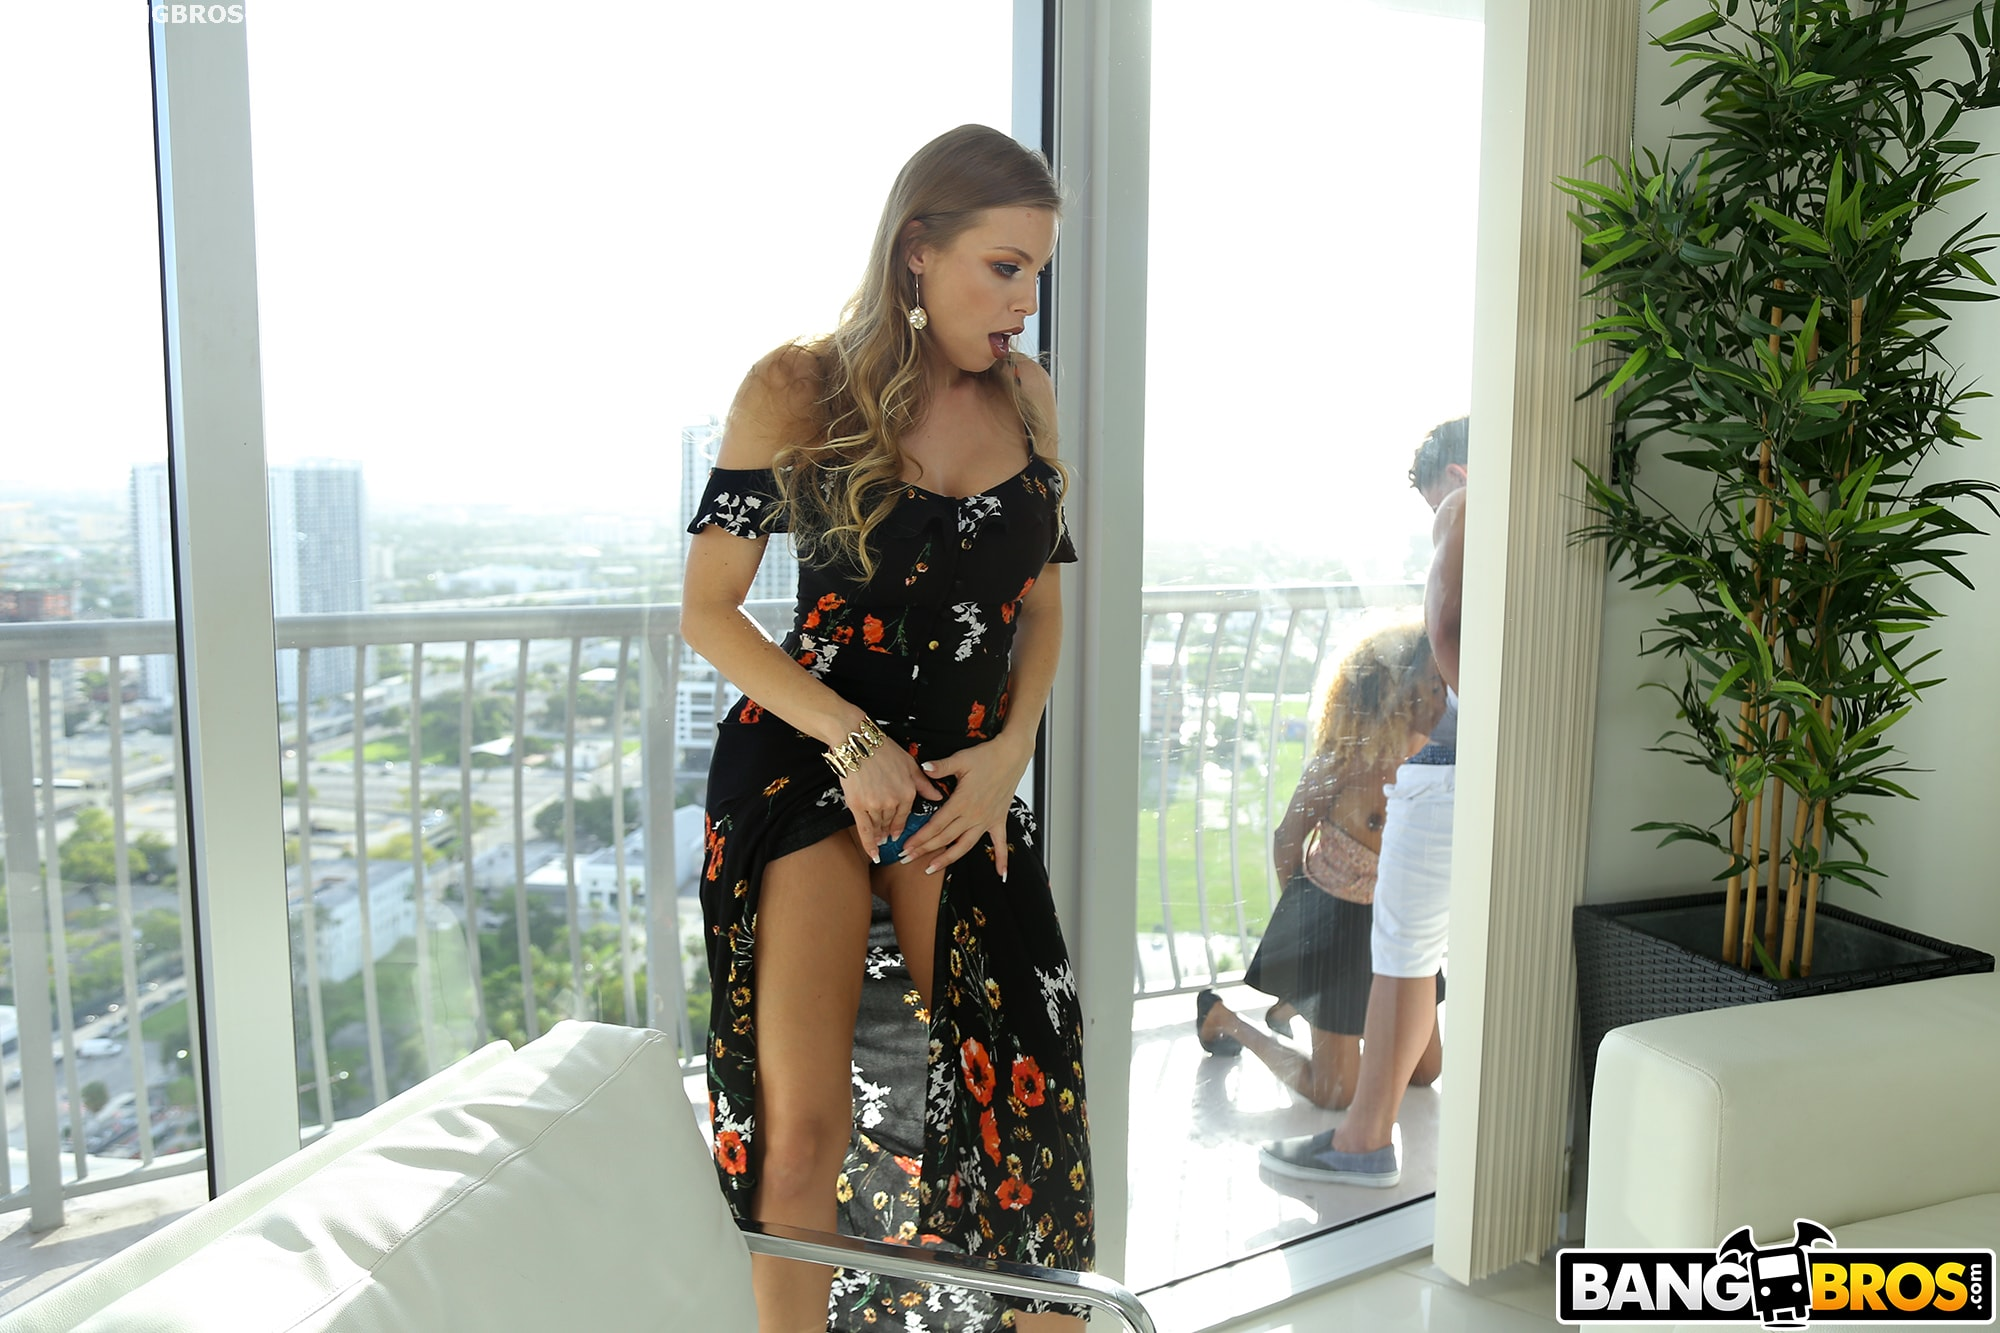 Bangbros 'Banging My Busty Stepmom For A Creampie' starring Britney Amber (Photo 84)